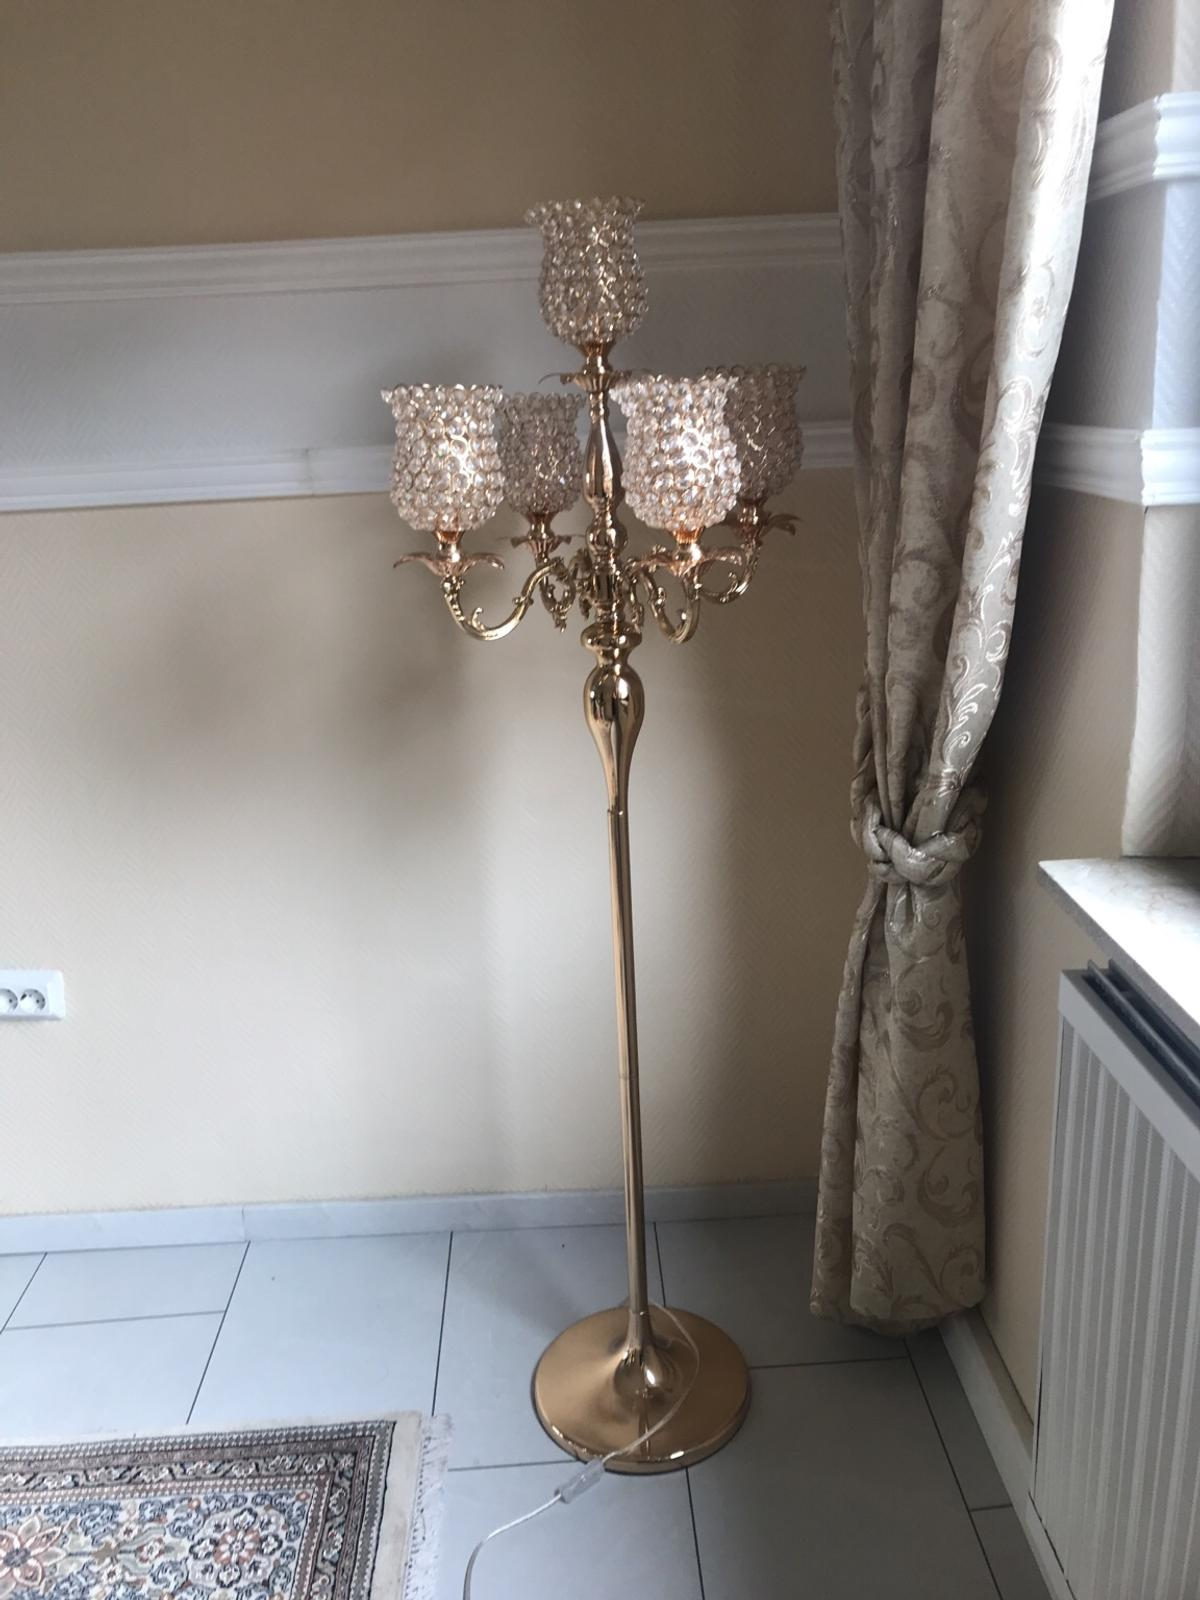 Stehlampe Gold In 69190 Walldorf For 130 00 For Sale Shpock